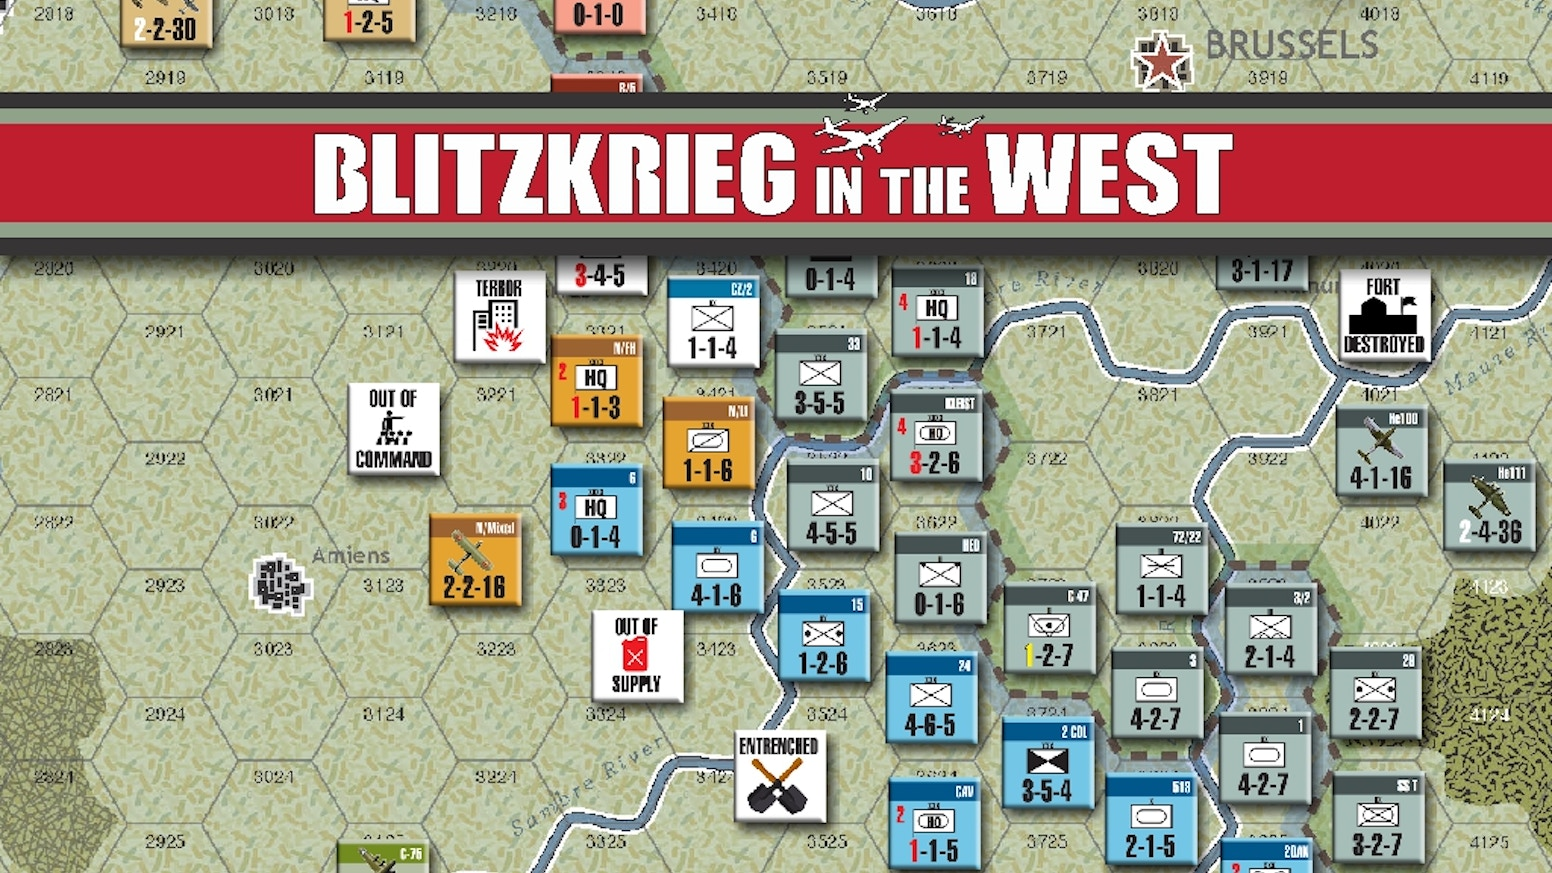 An Historical Board Game of the German Campaign in Western Europe, 1940